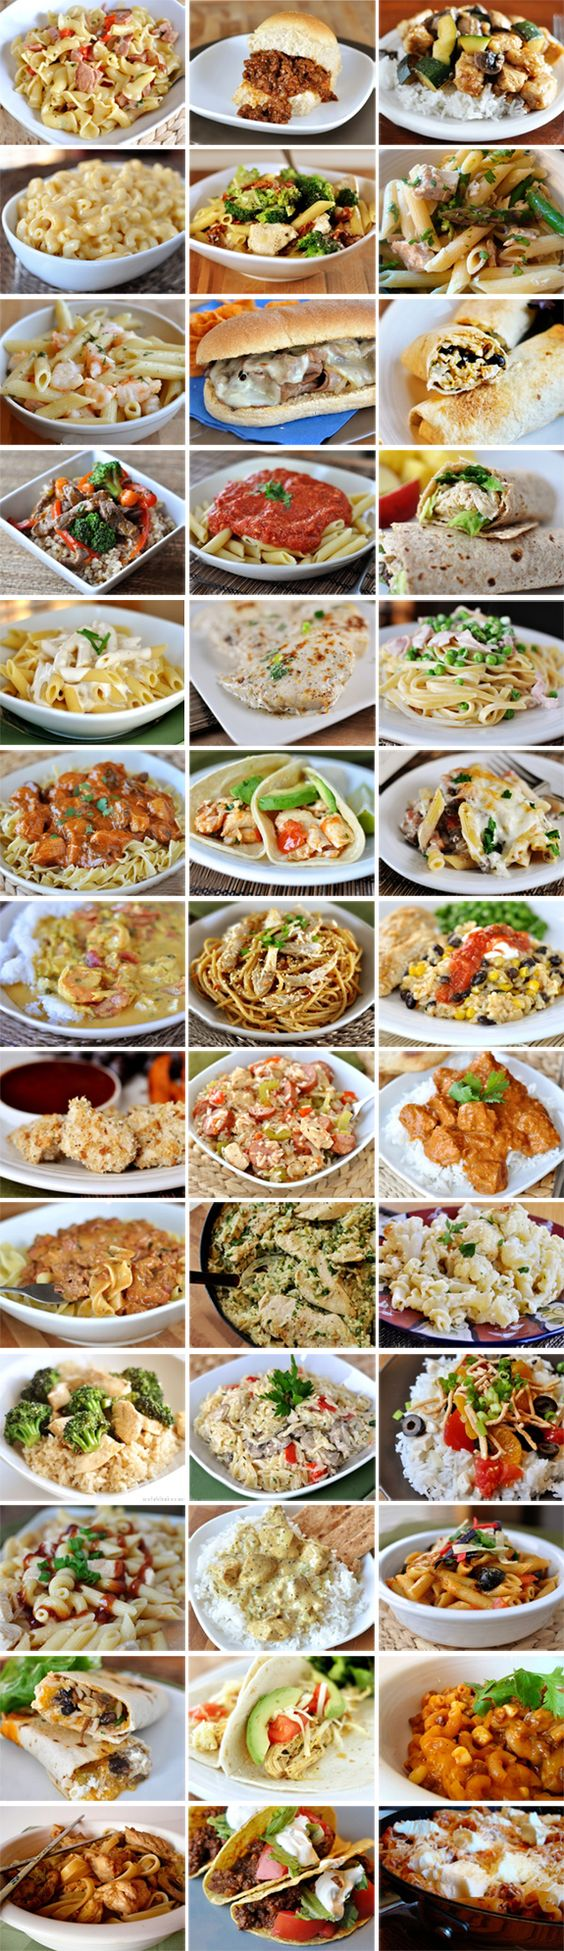 39 Meals to Make in 30-Minutes or Less Yes, please!!